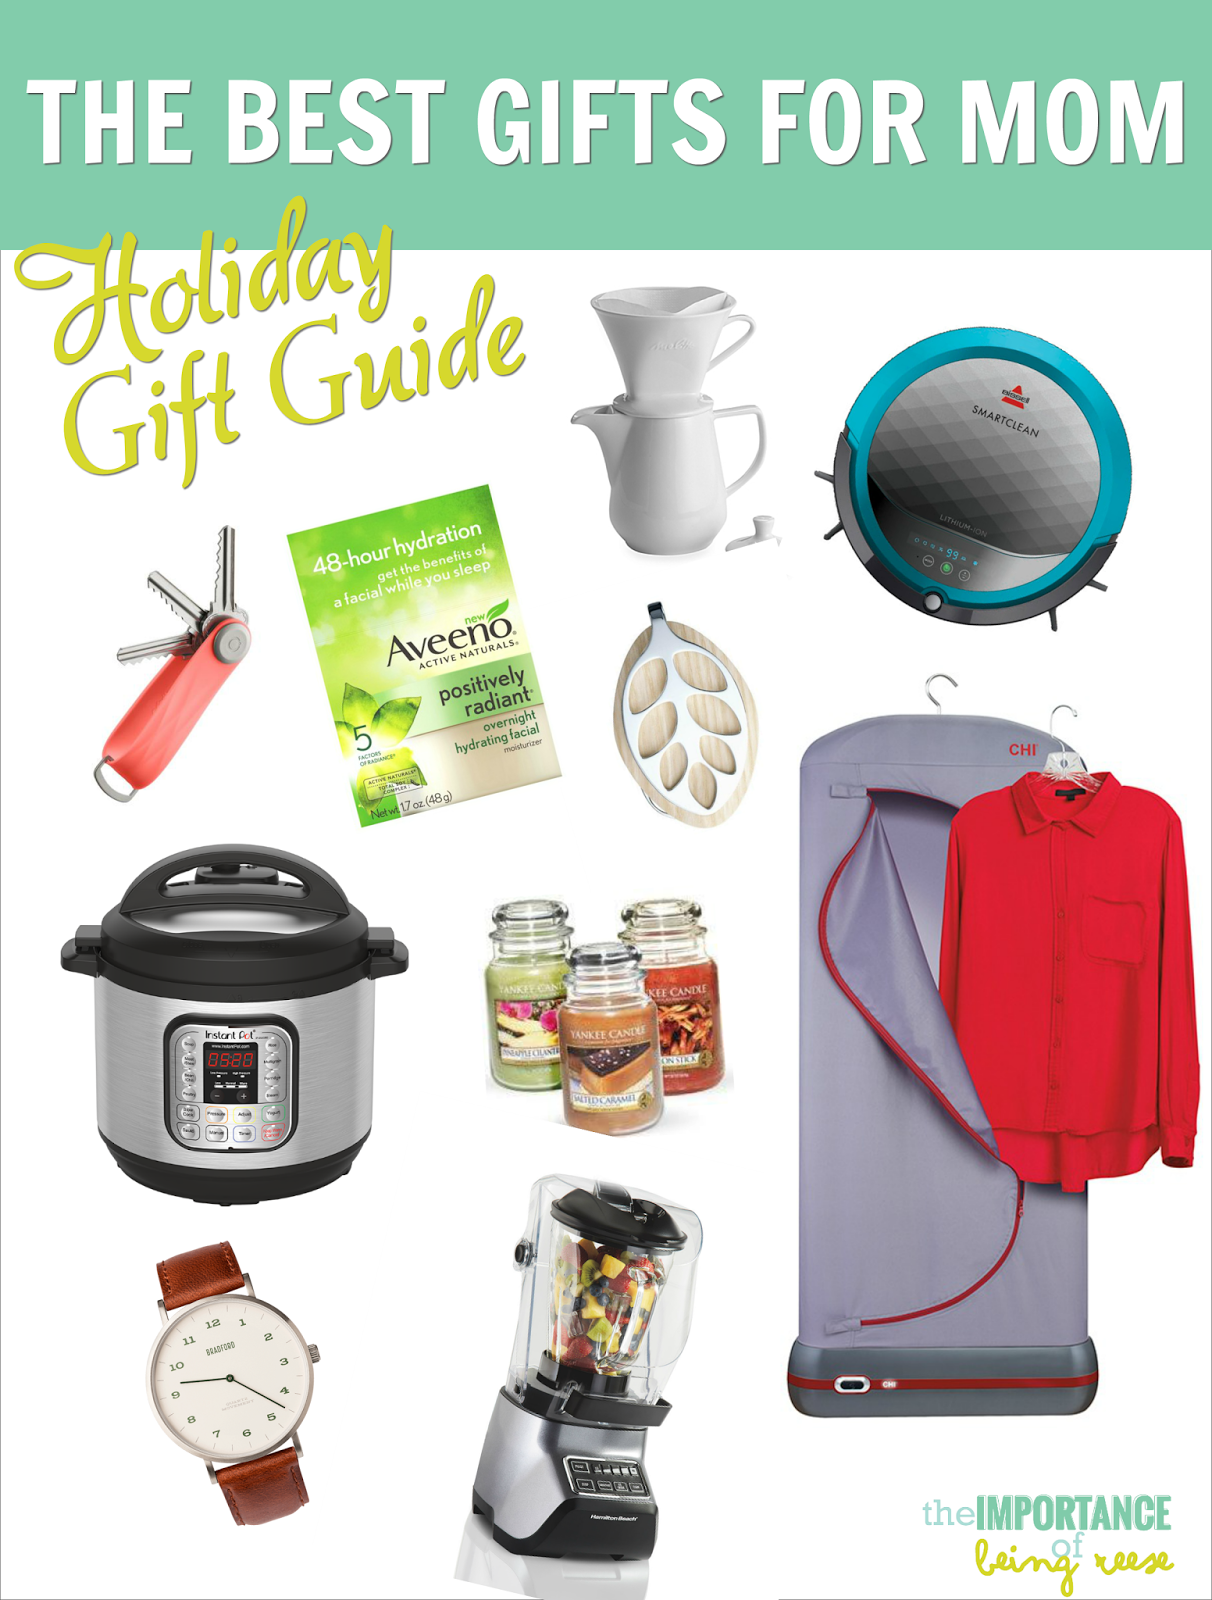 Here are some of the hottest holiday gifts for moms this season!